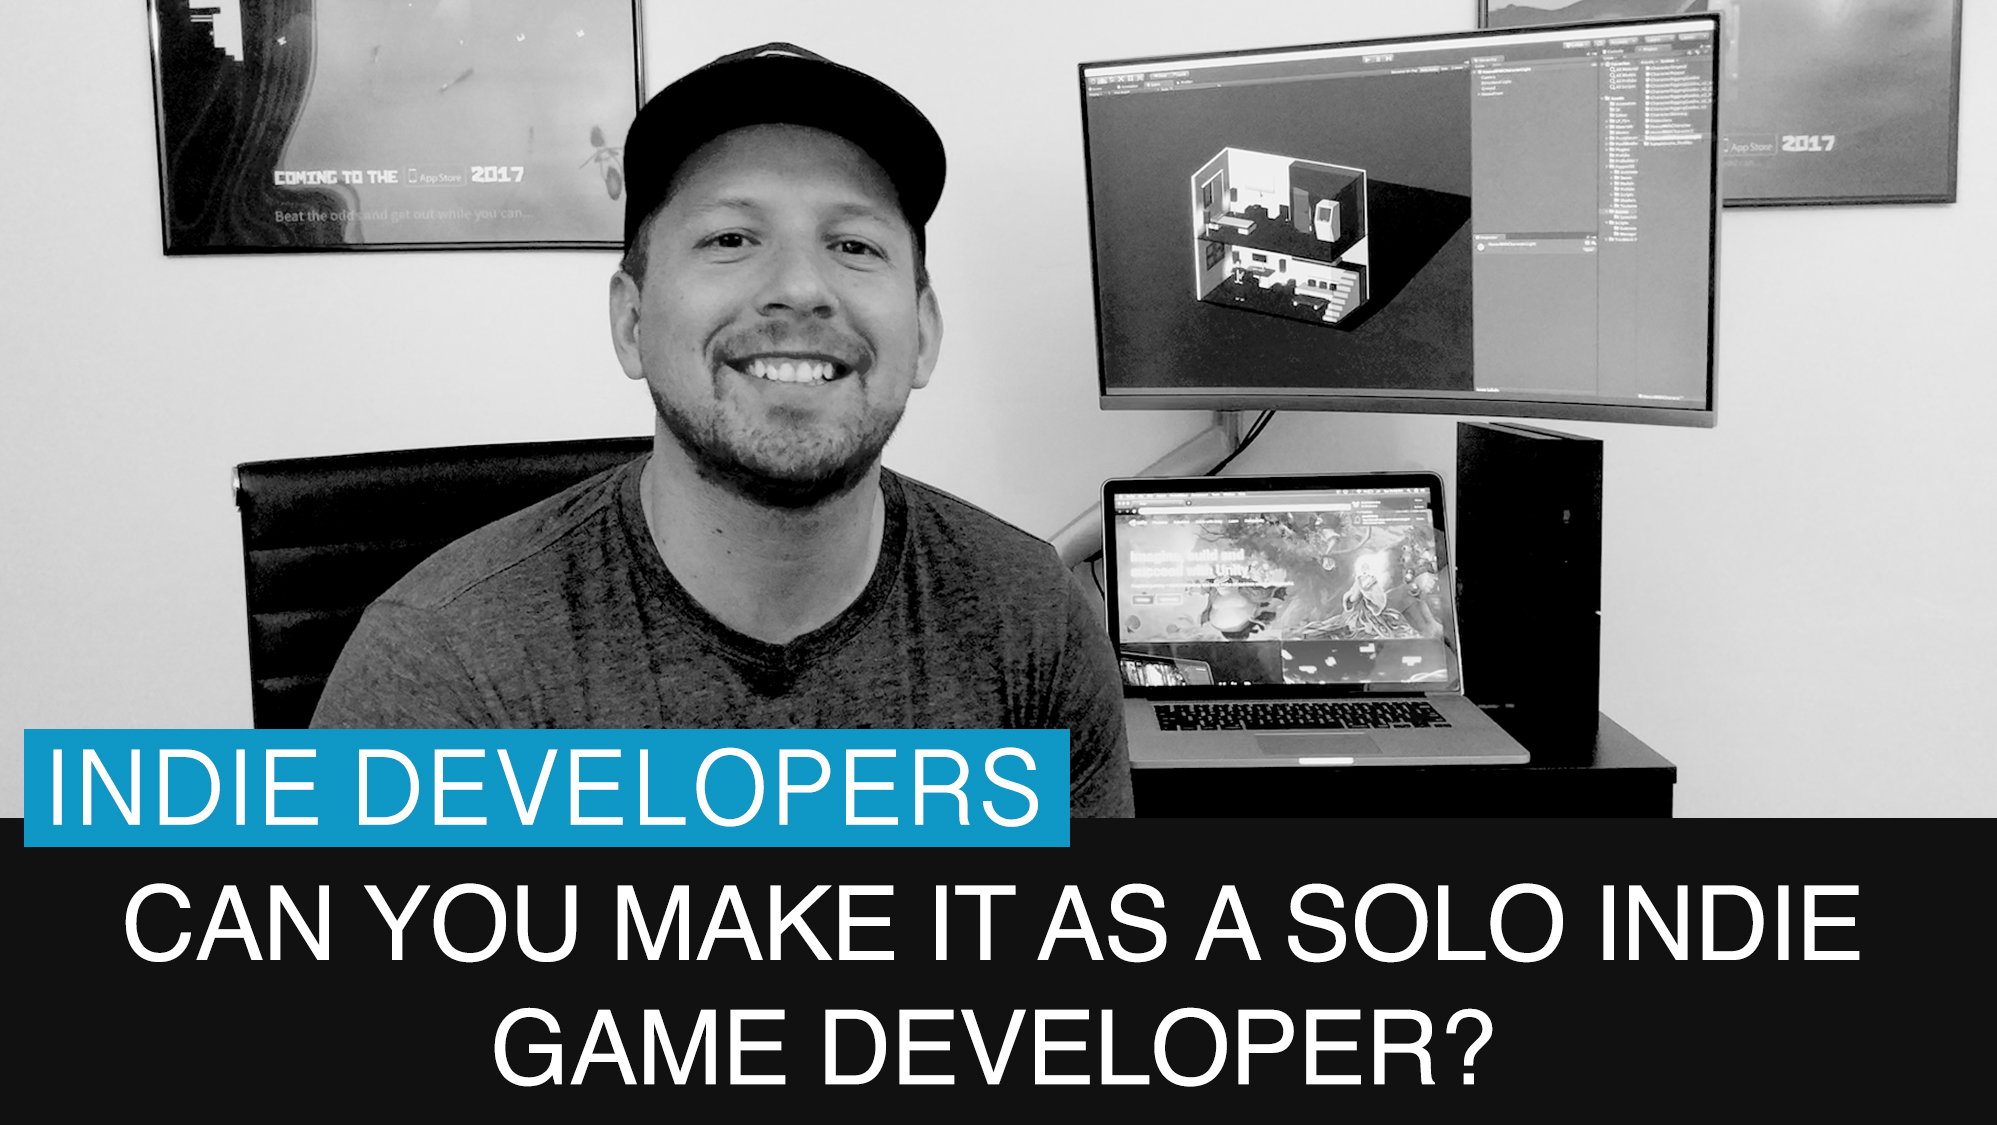 Can you make it as a solo indie game developer?